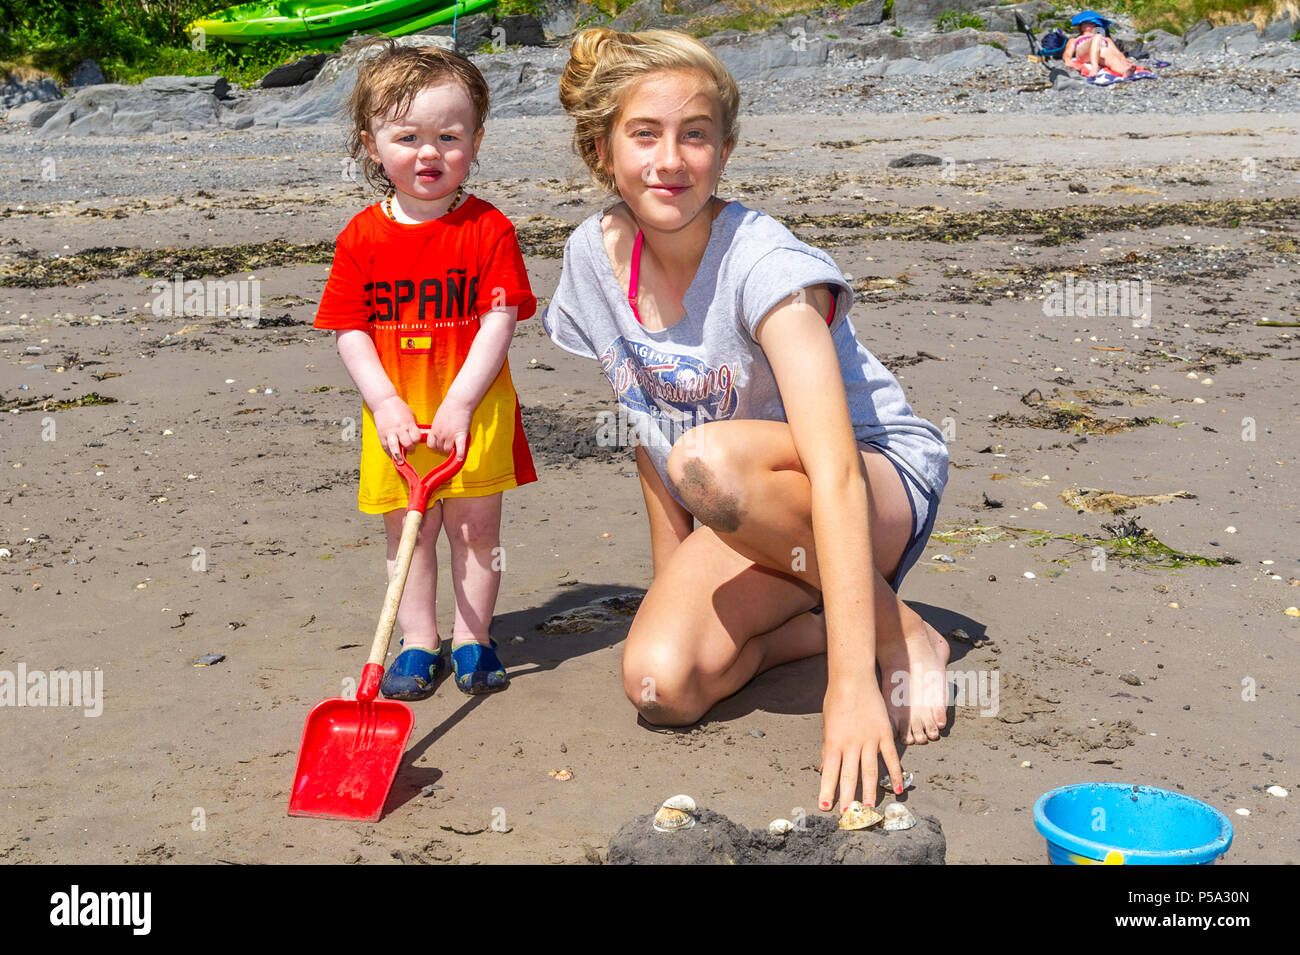 Schull, Ireland. 26th June, 2018. Young children play on the beach during another blisteringly hot day in West Cork, Ireland. Ireland is currently enjoying a mini heatwave with temperatures due to hit 30° Celsius later in the week. Credit: Andy Gibson/Alamy Live News. - Stock Image